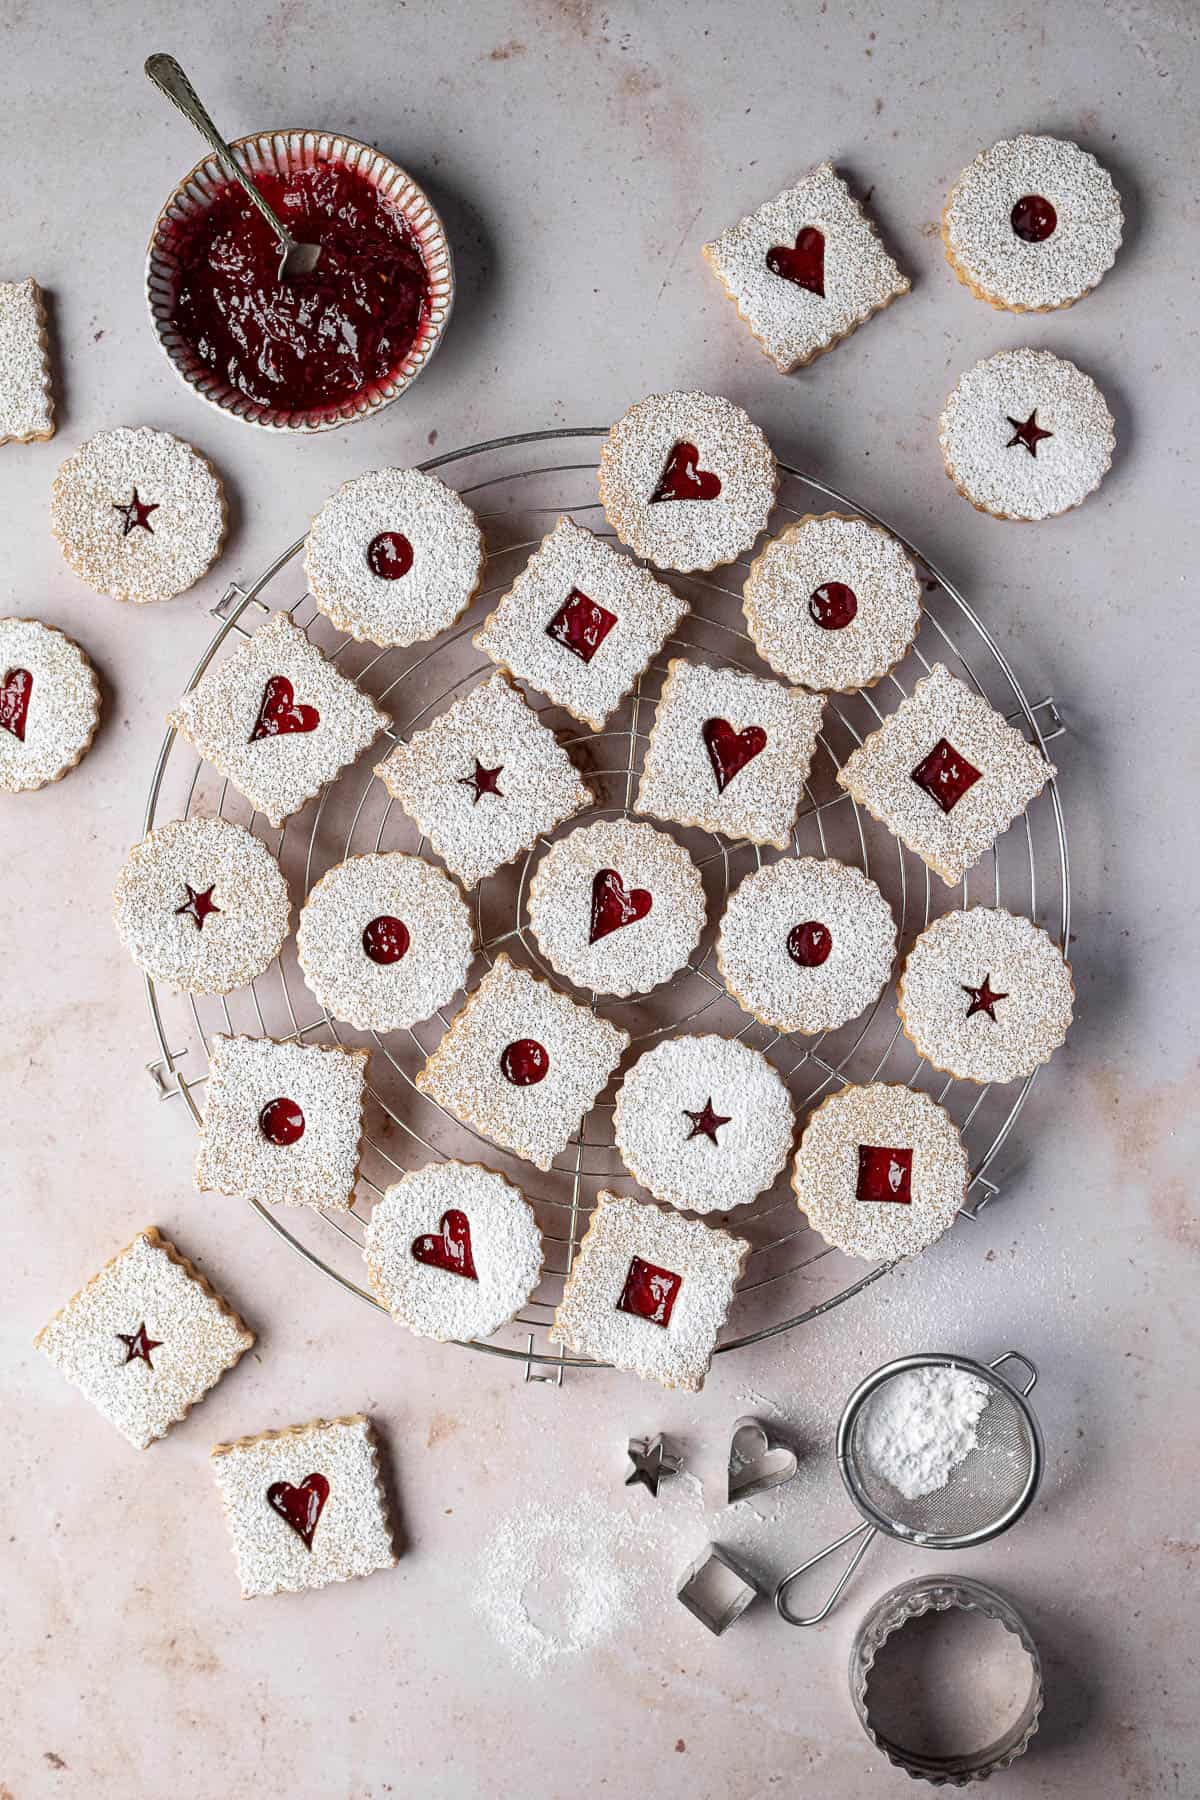 Vegan Linzer cookies on a round wire cooling rack on a marble background with a bowl of jam, mini sieve of icing sugar and cookie cutters.